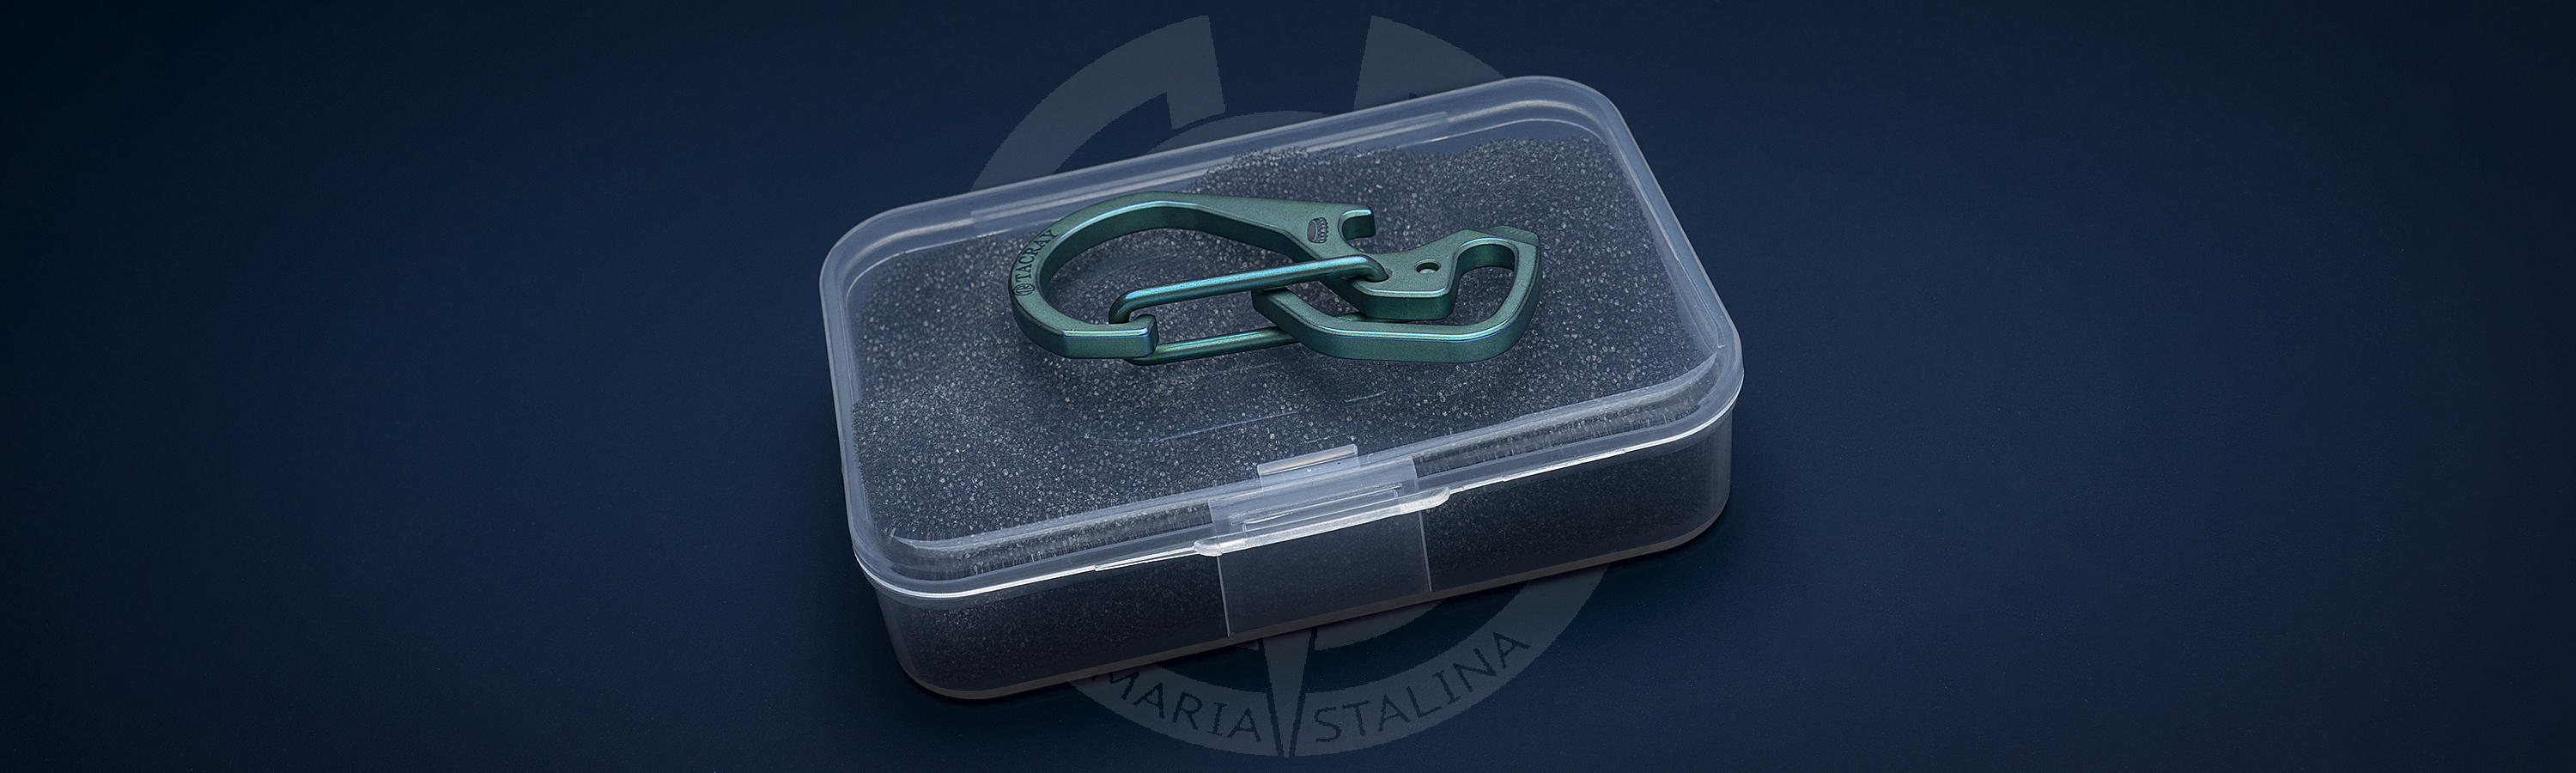 The carbine TR-YSK 1502 comes with a plastic case